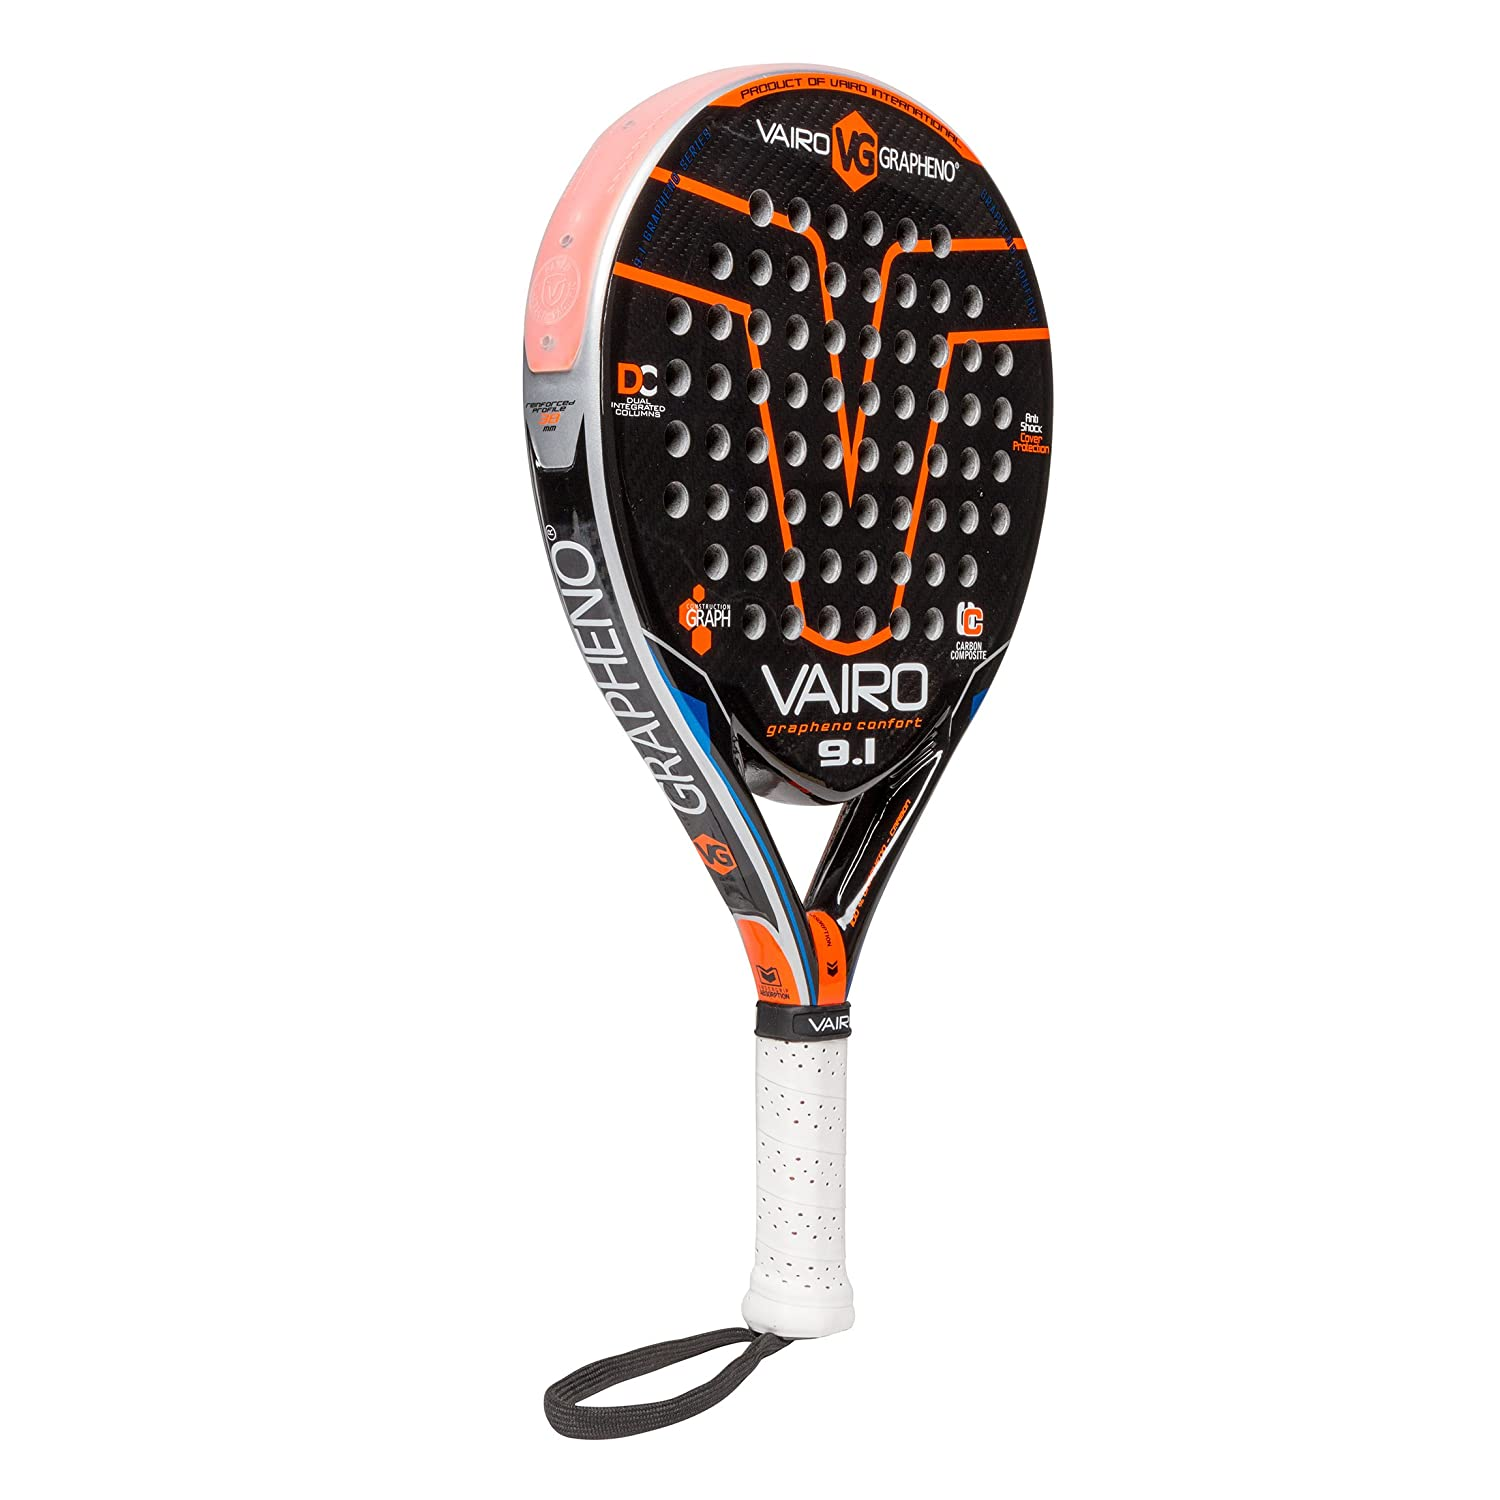 VAIRO Pala de Padel GRAPHENO Confort 9.1: Amazon.es ...